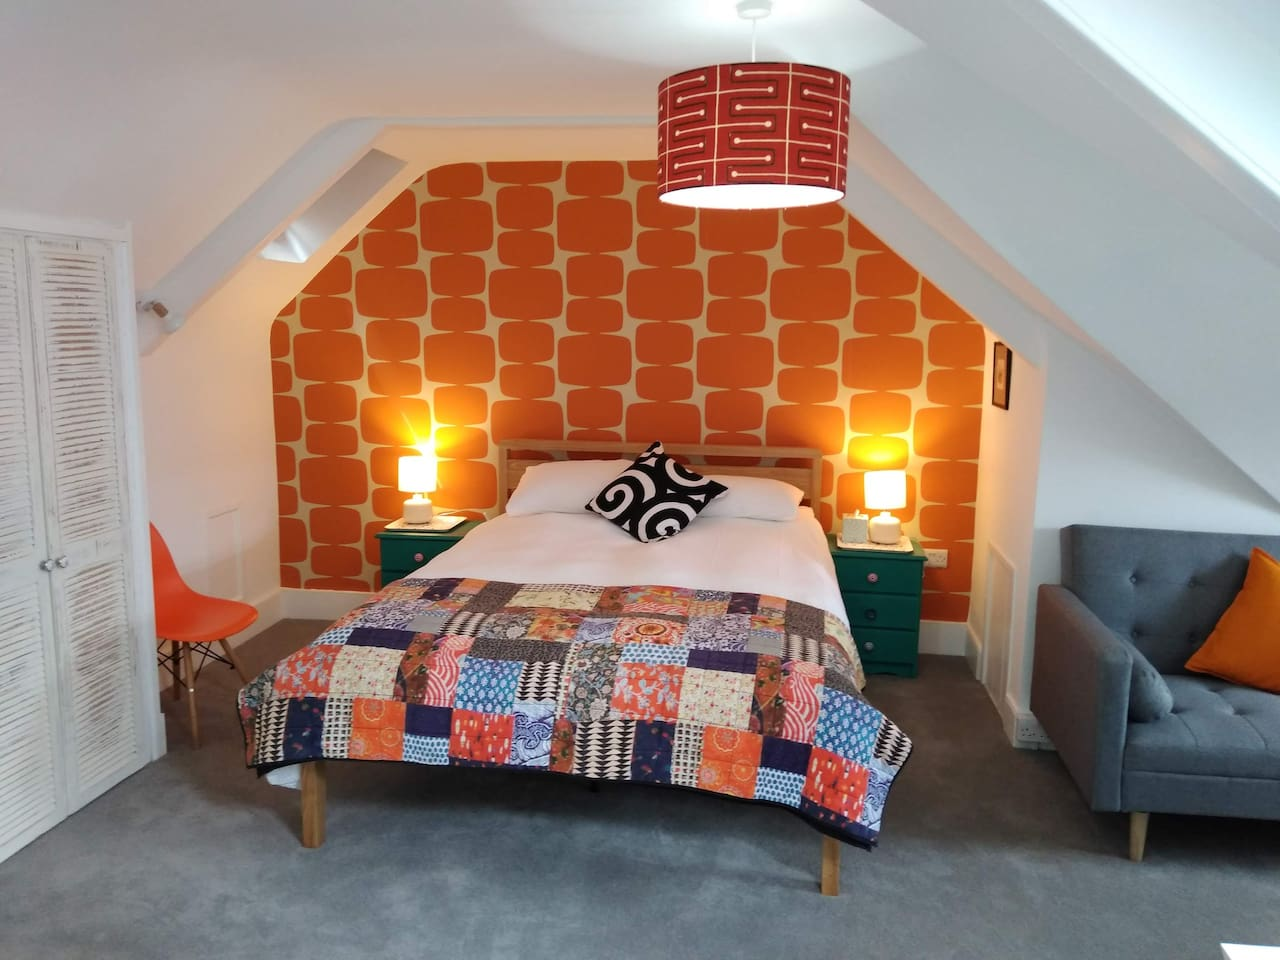 Bed with bold wallpaper!